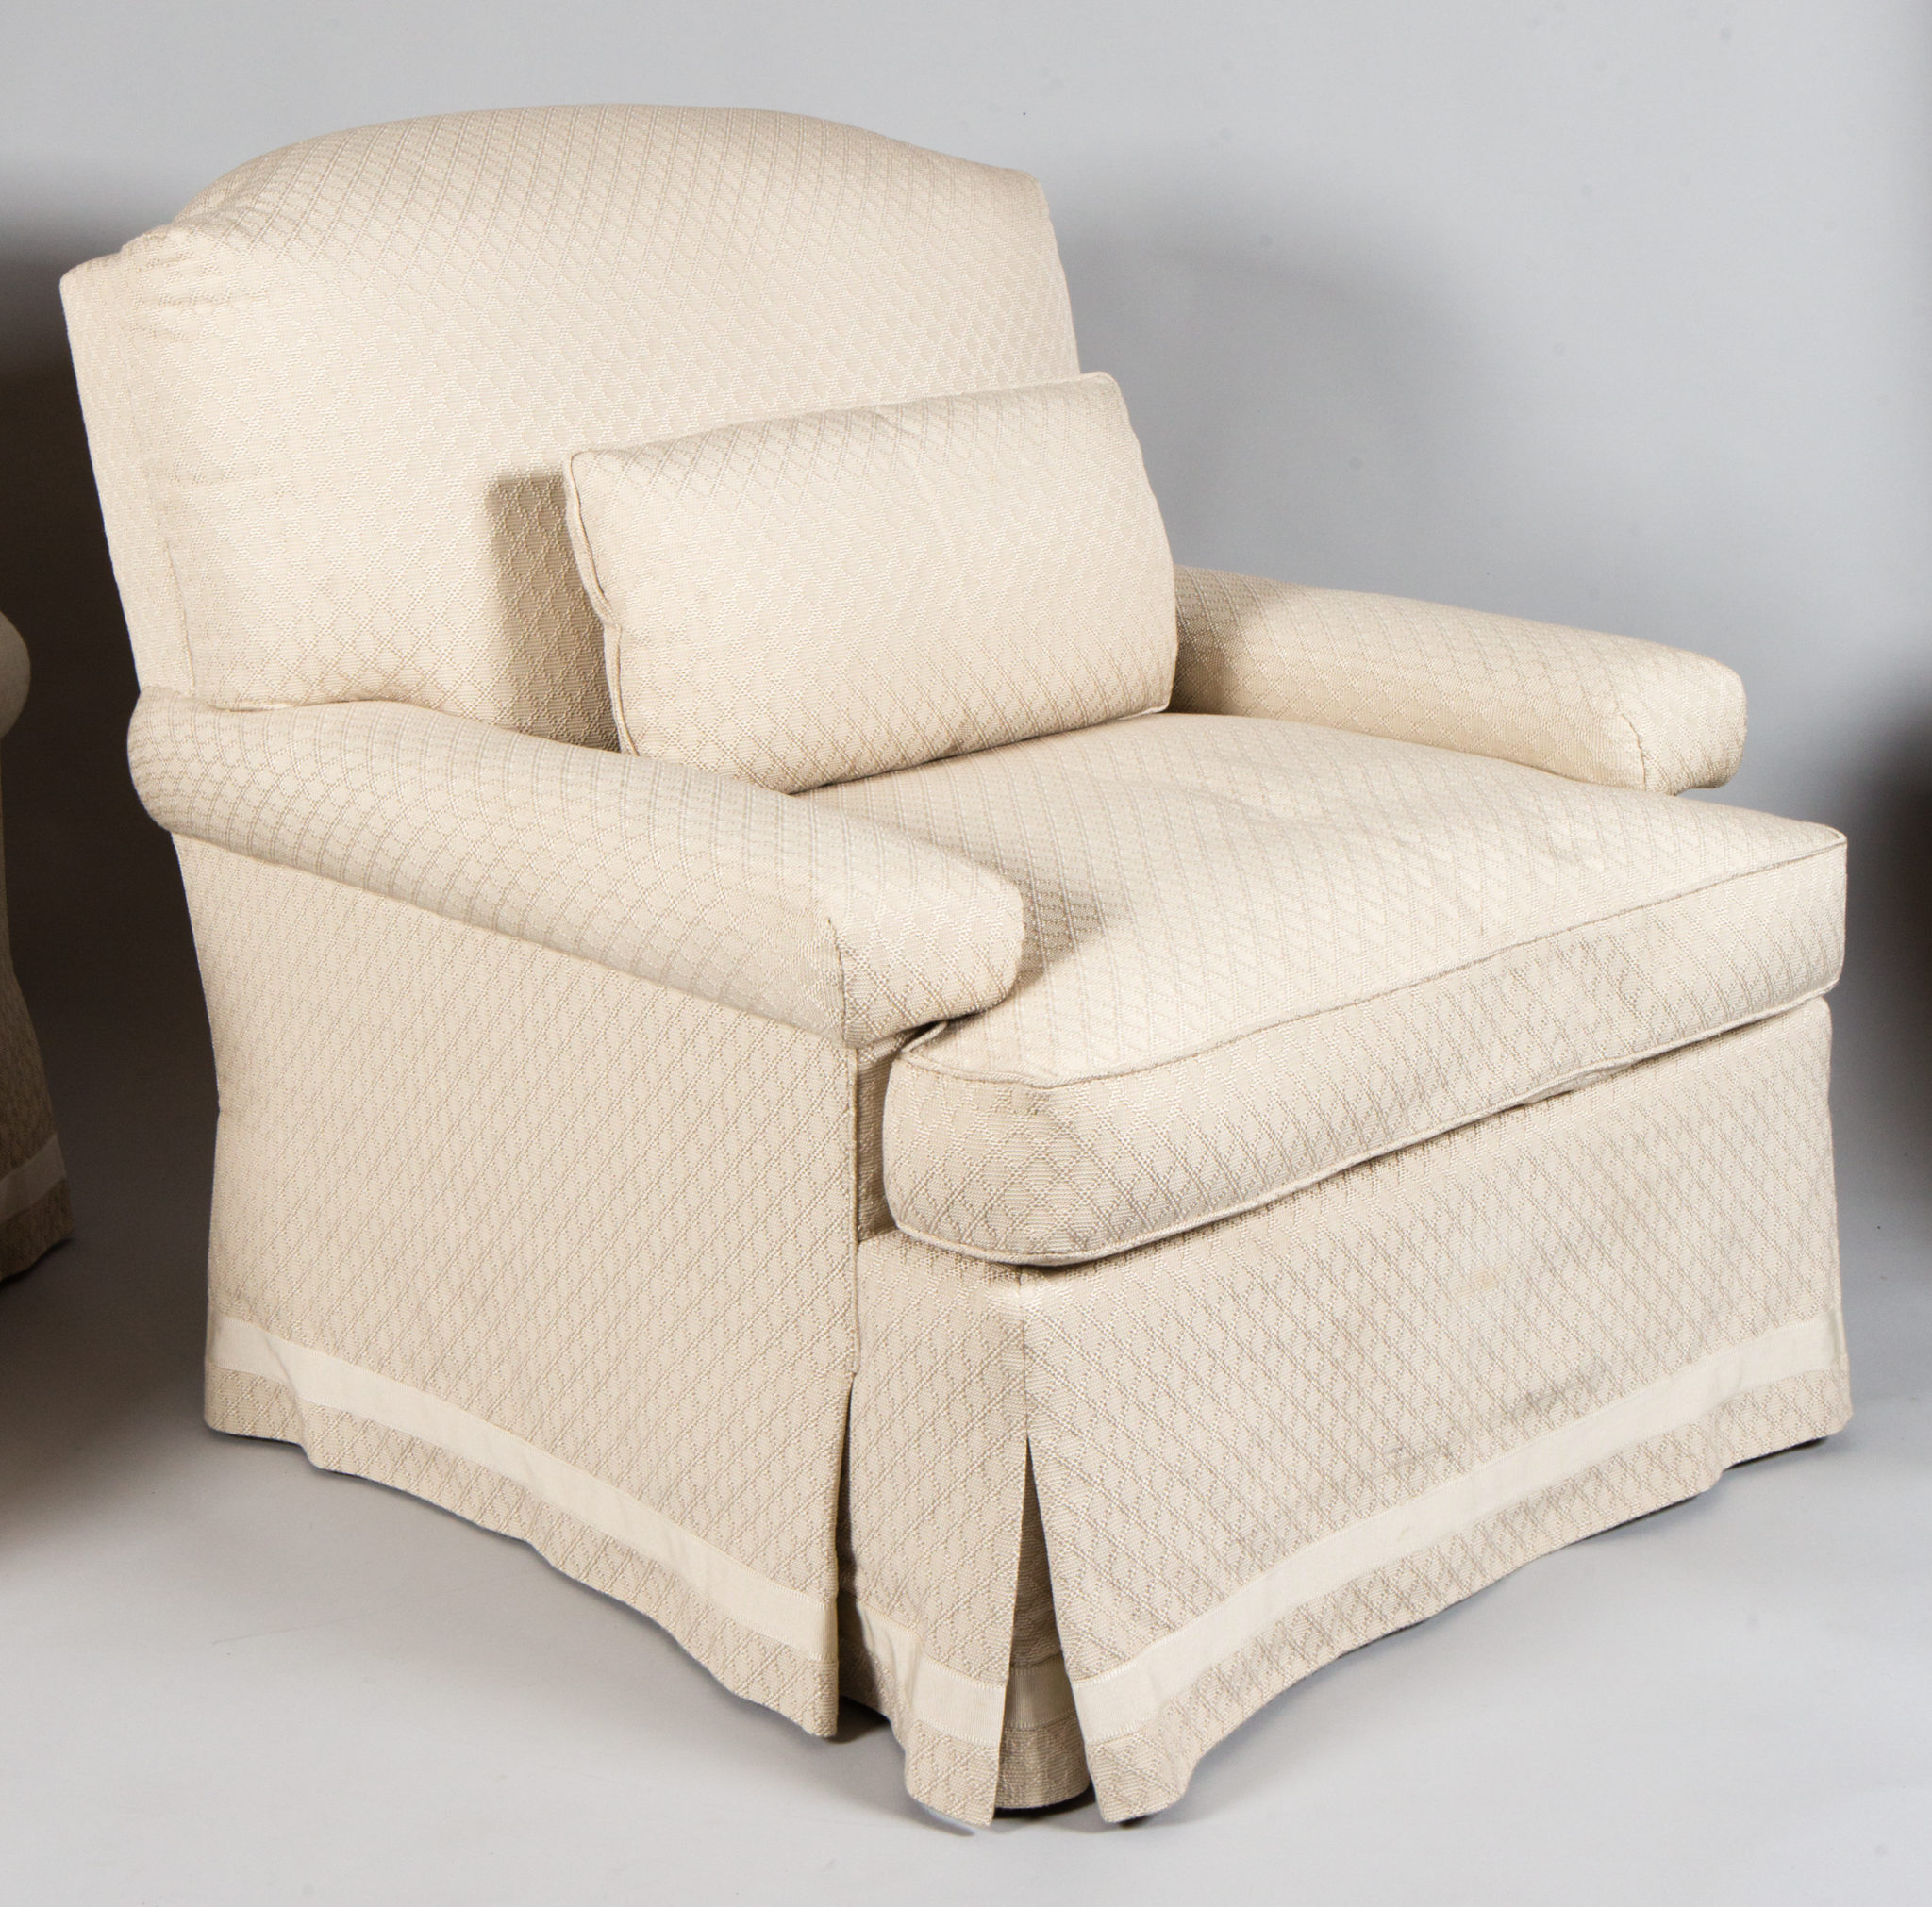 Pair of White Linen Club Chairs